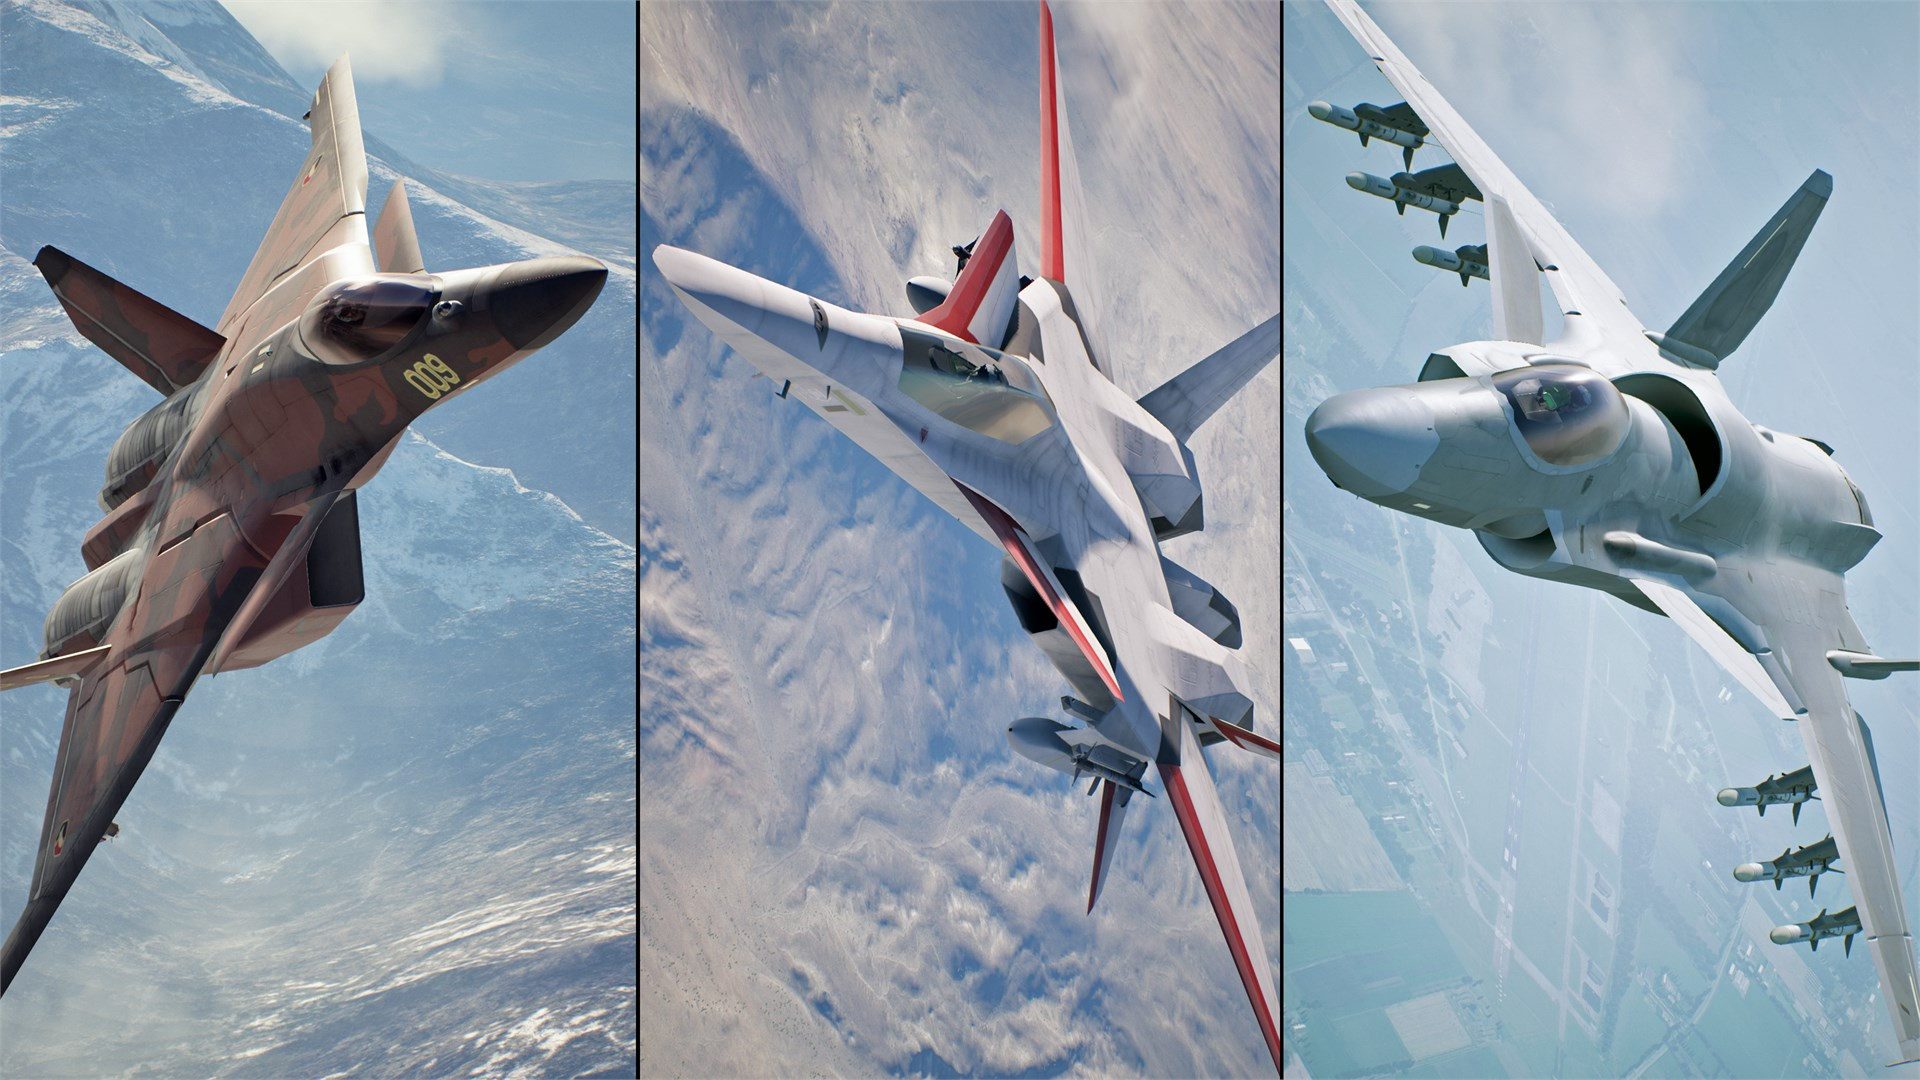 Ace Combat 7 Skies Unknown 25th Anniversary Dlc Flies Onto Xbox One Ps4 And Pc Thexboxhub